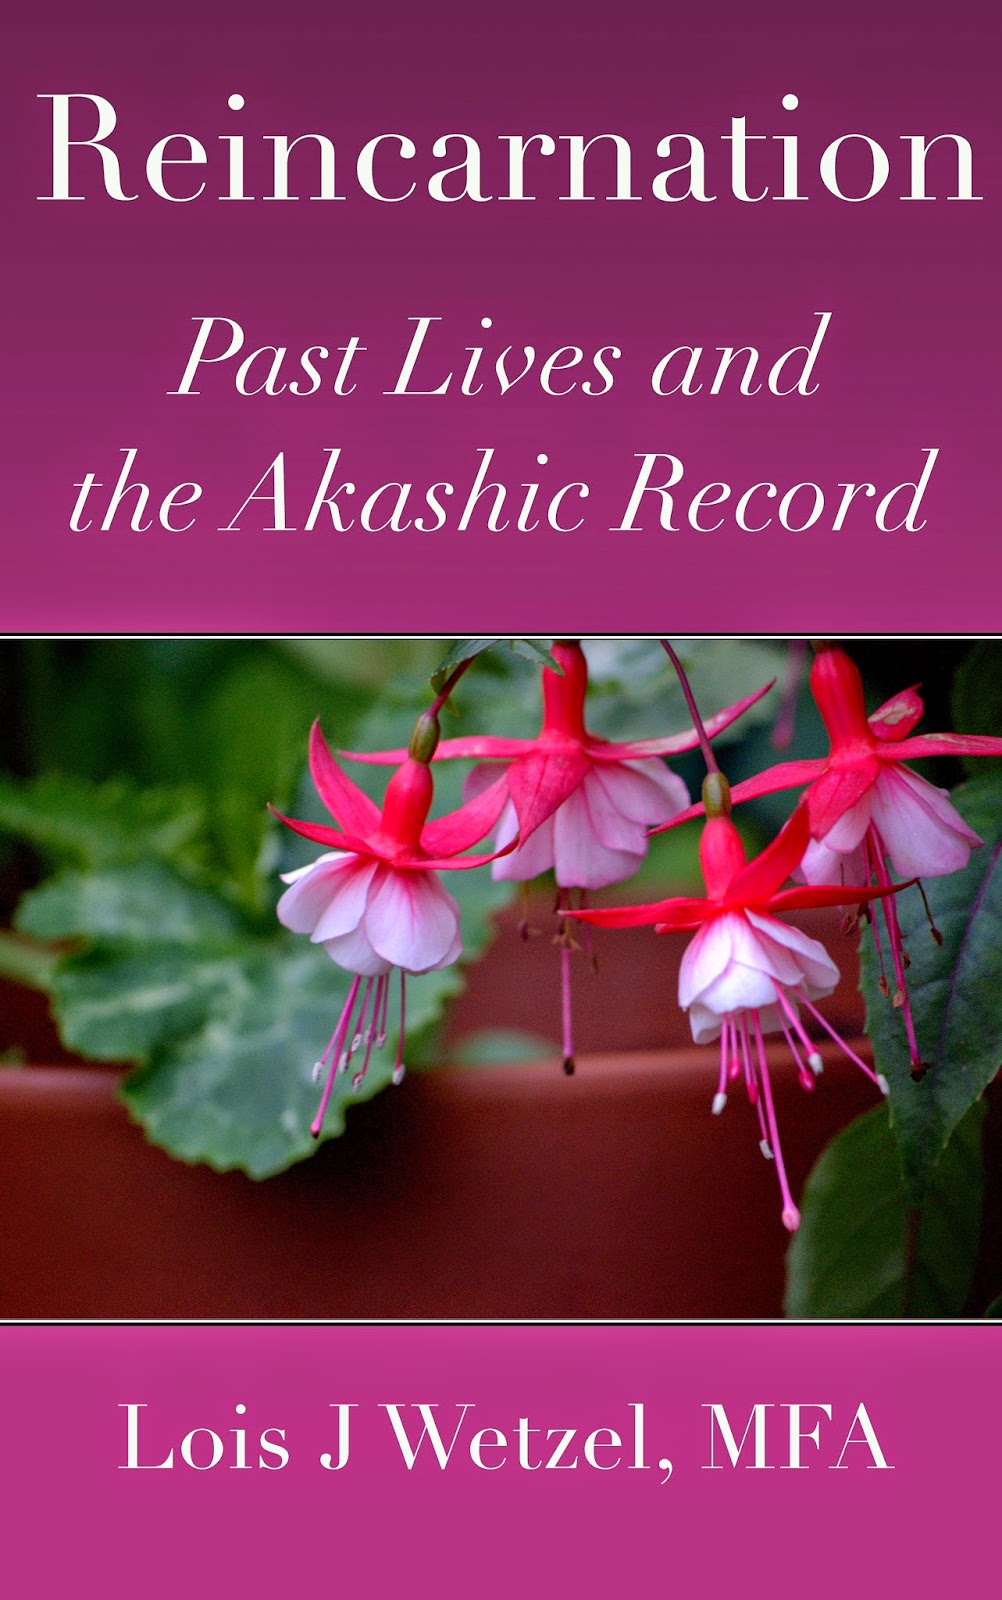 Reincarnation: Past Lives and the Akashic Record by Lois Wetzel